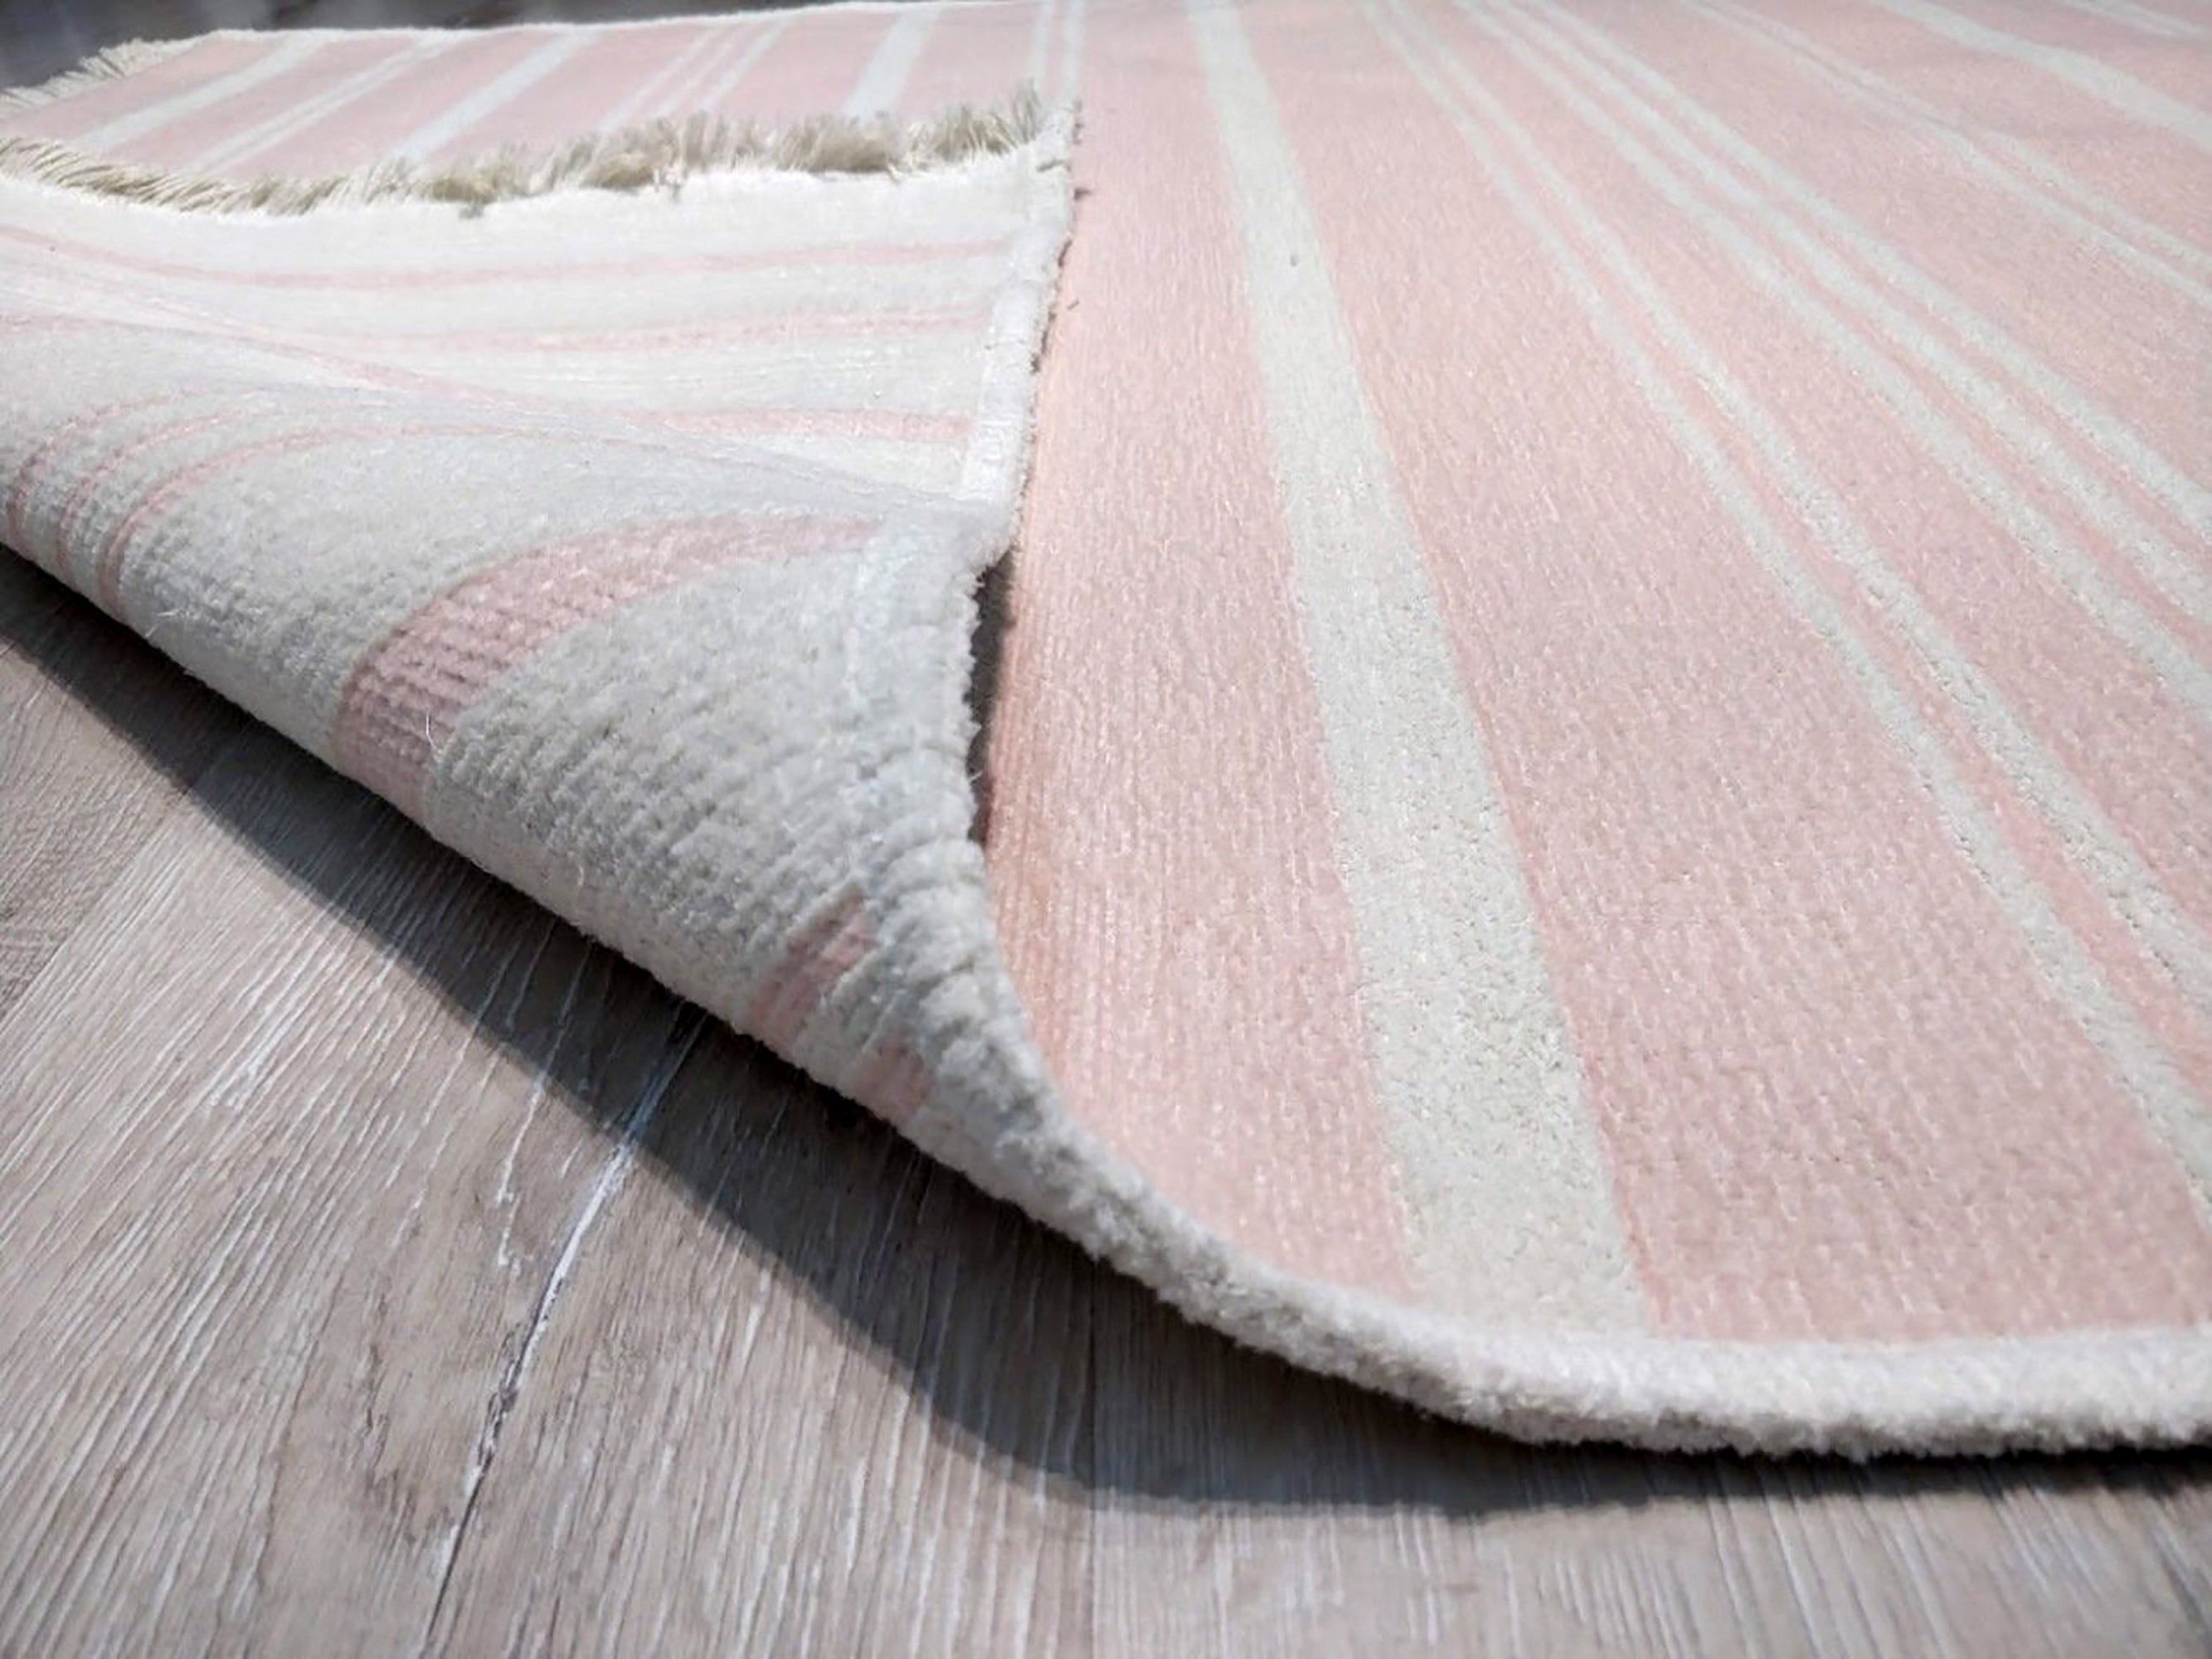 PAMA | Revesible Kilim Rug, Washable Flatweave Soft, Pastel Pink Modern Turkish Rug, Neutral White Striped rug, Double Sided, Shabby chic